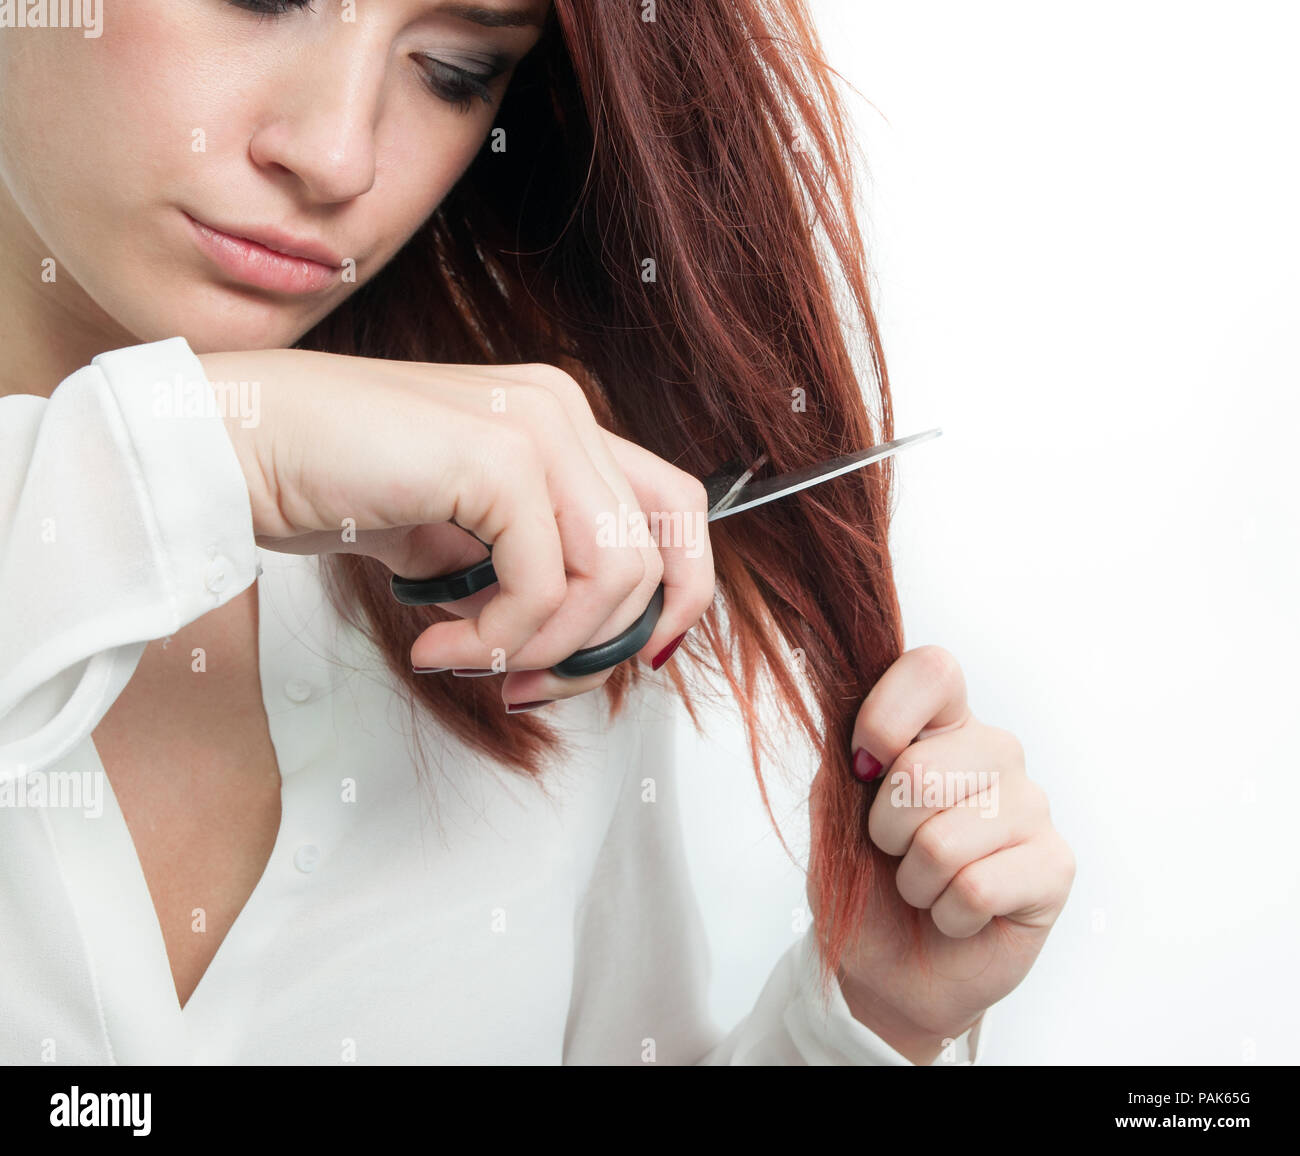 Beautiful redhead young woman cutting her hair with a pair of scissors on a white isolated background suggesting a new hair style or hair problems reg